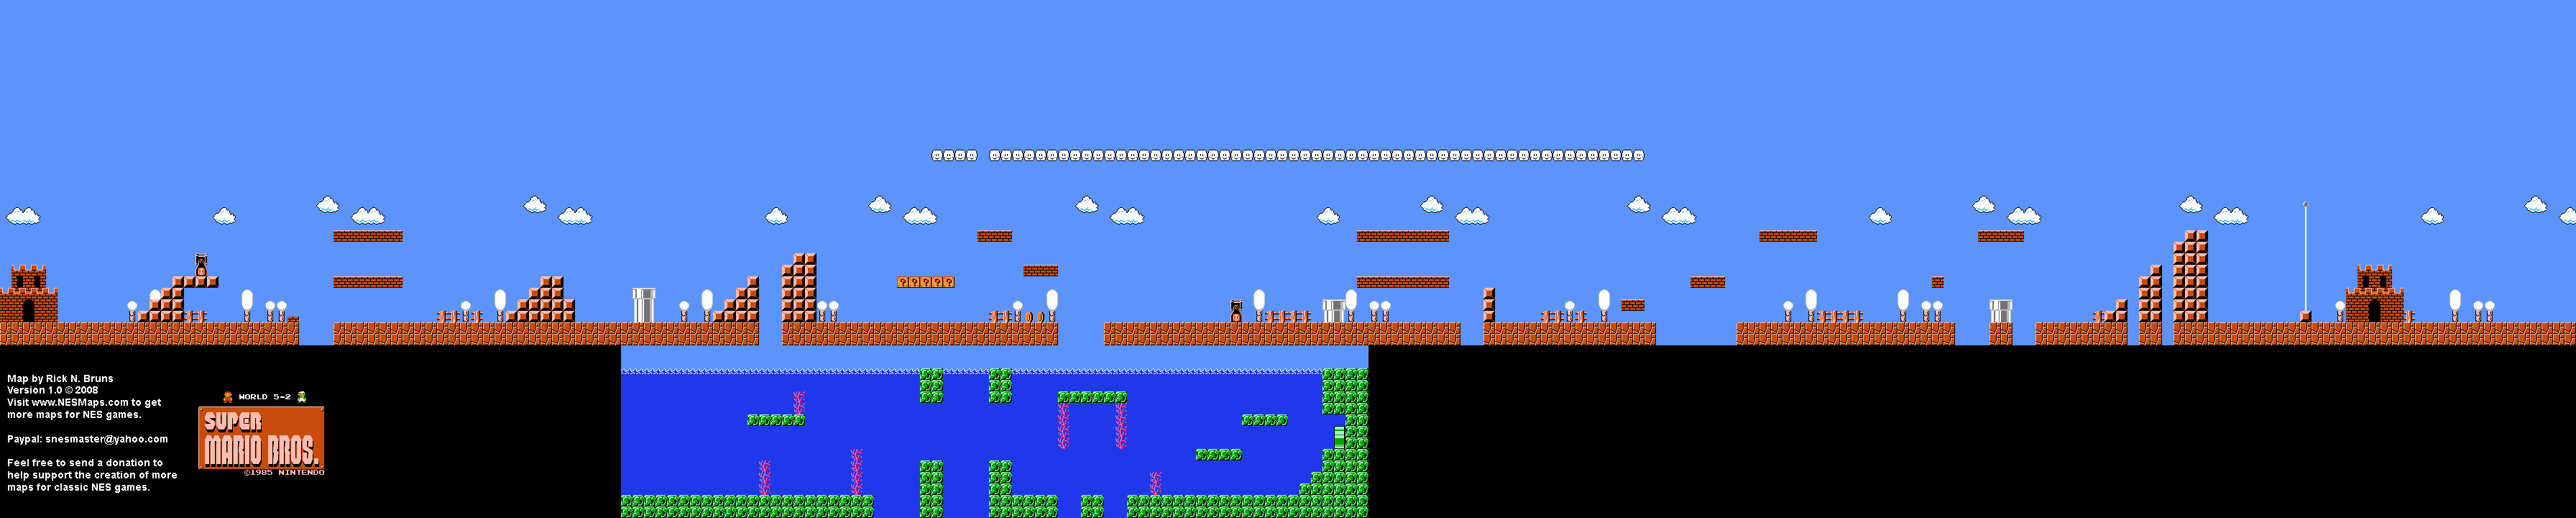 Super Mario Brothers - World 5-2 Nintendo NES Background Only Map